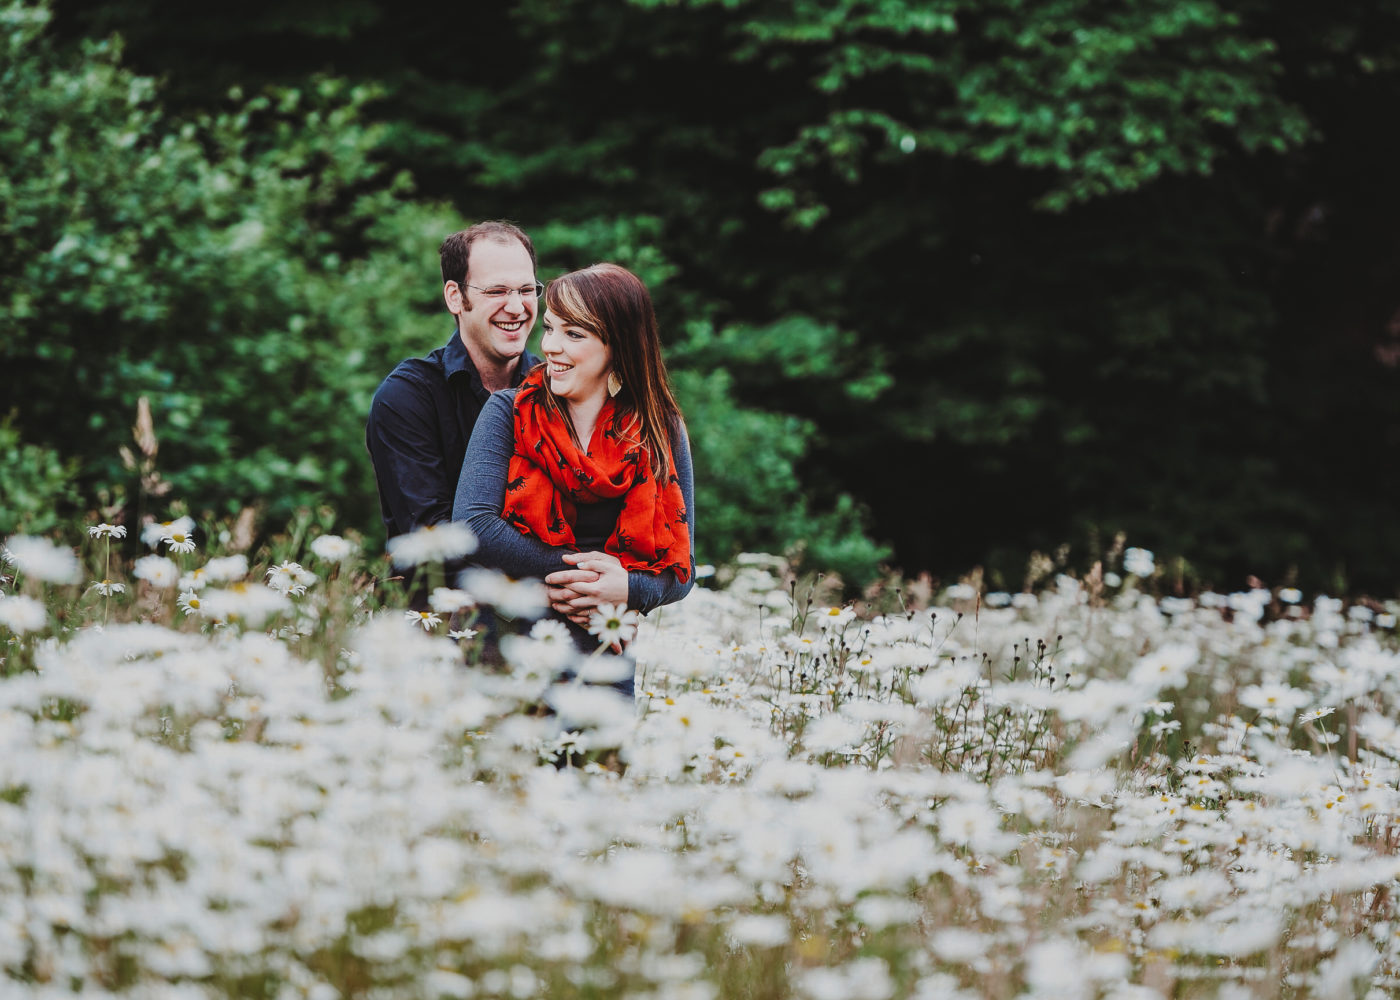 Shropshire engagement shoot | Ruth & Adam